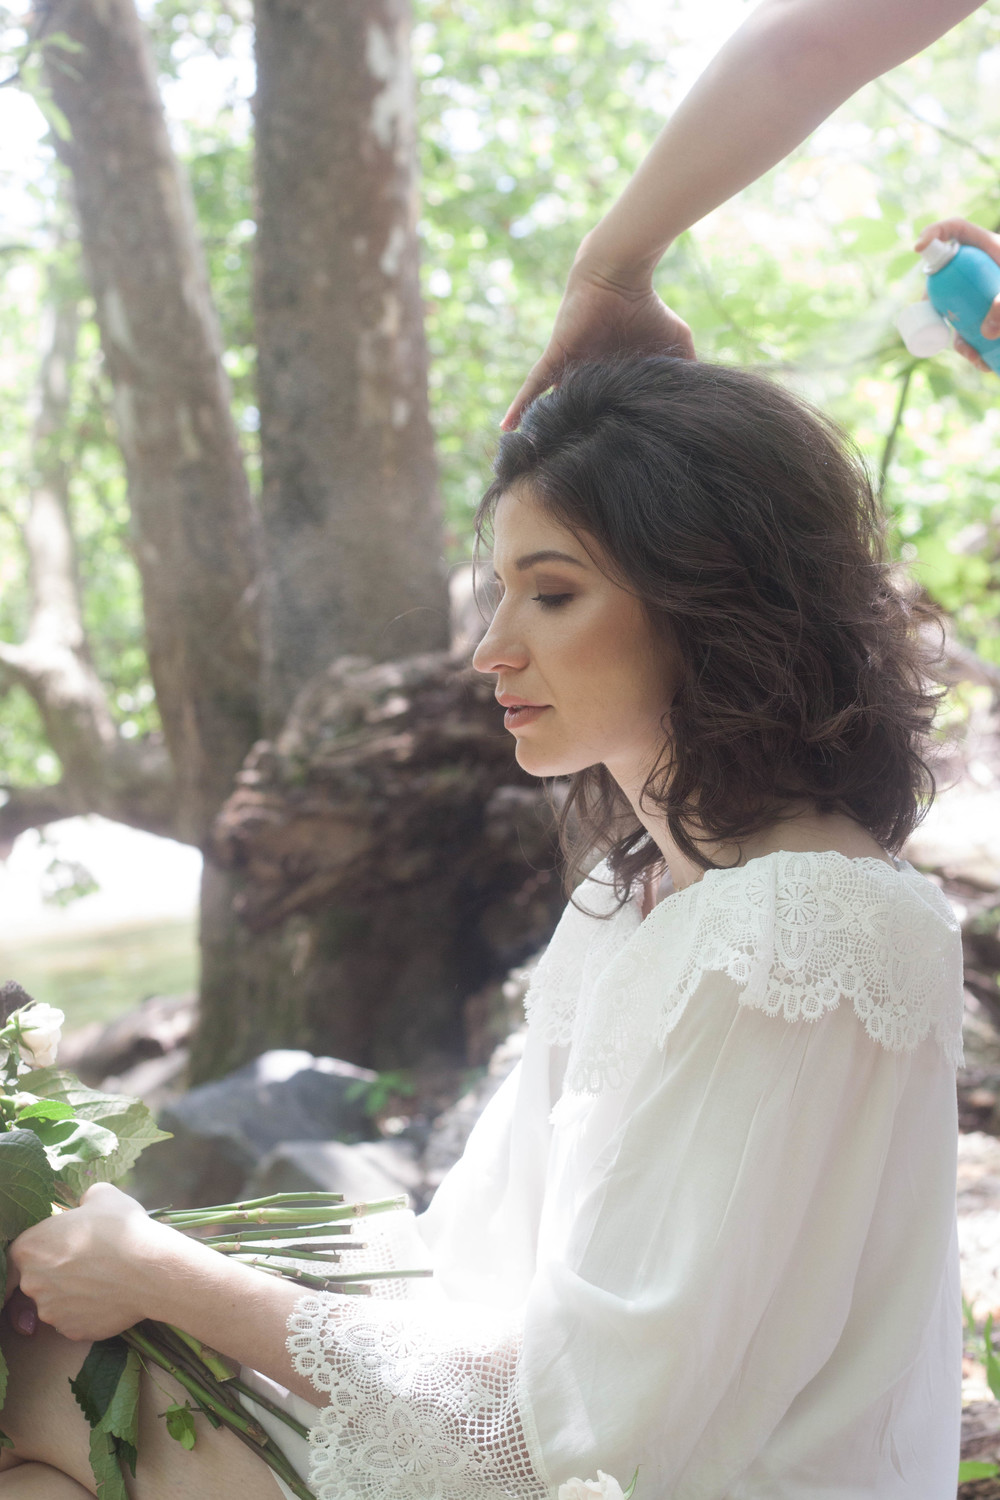 rlanemua.romanticforestshoot